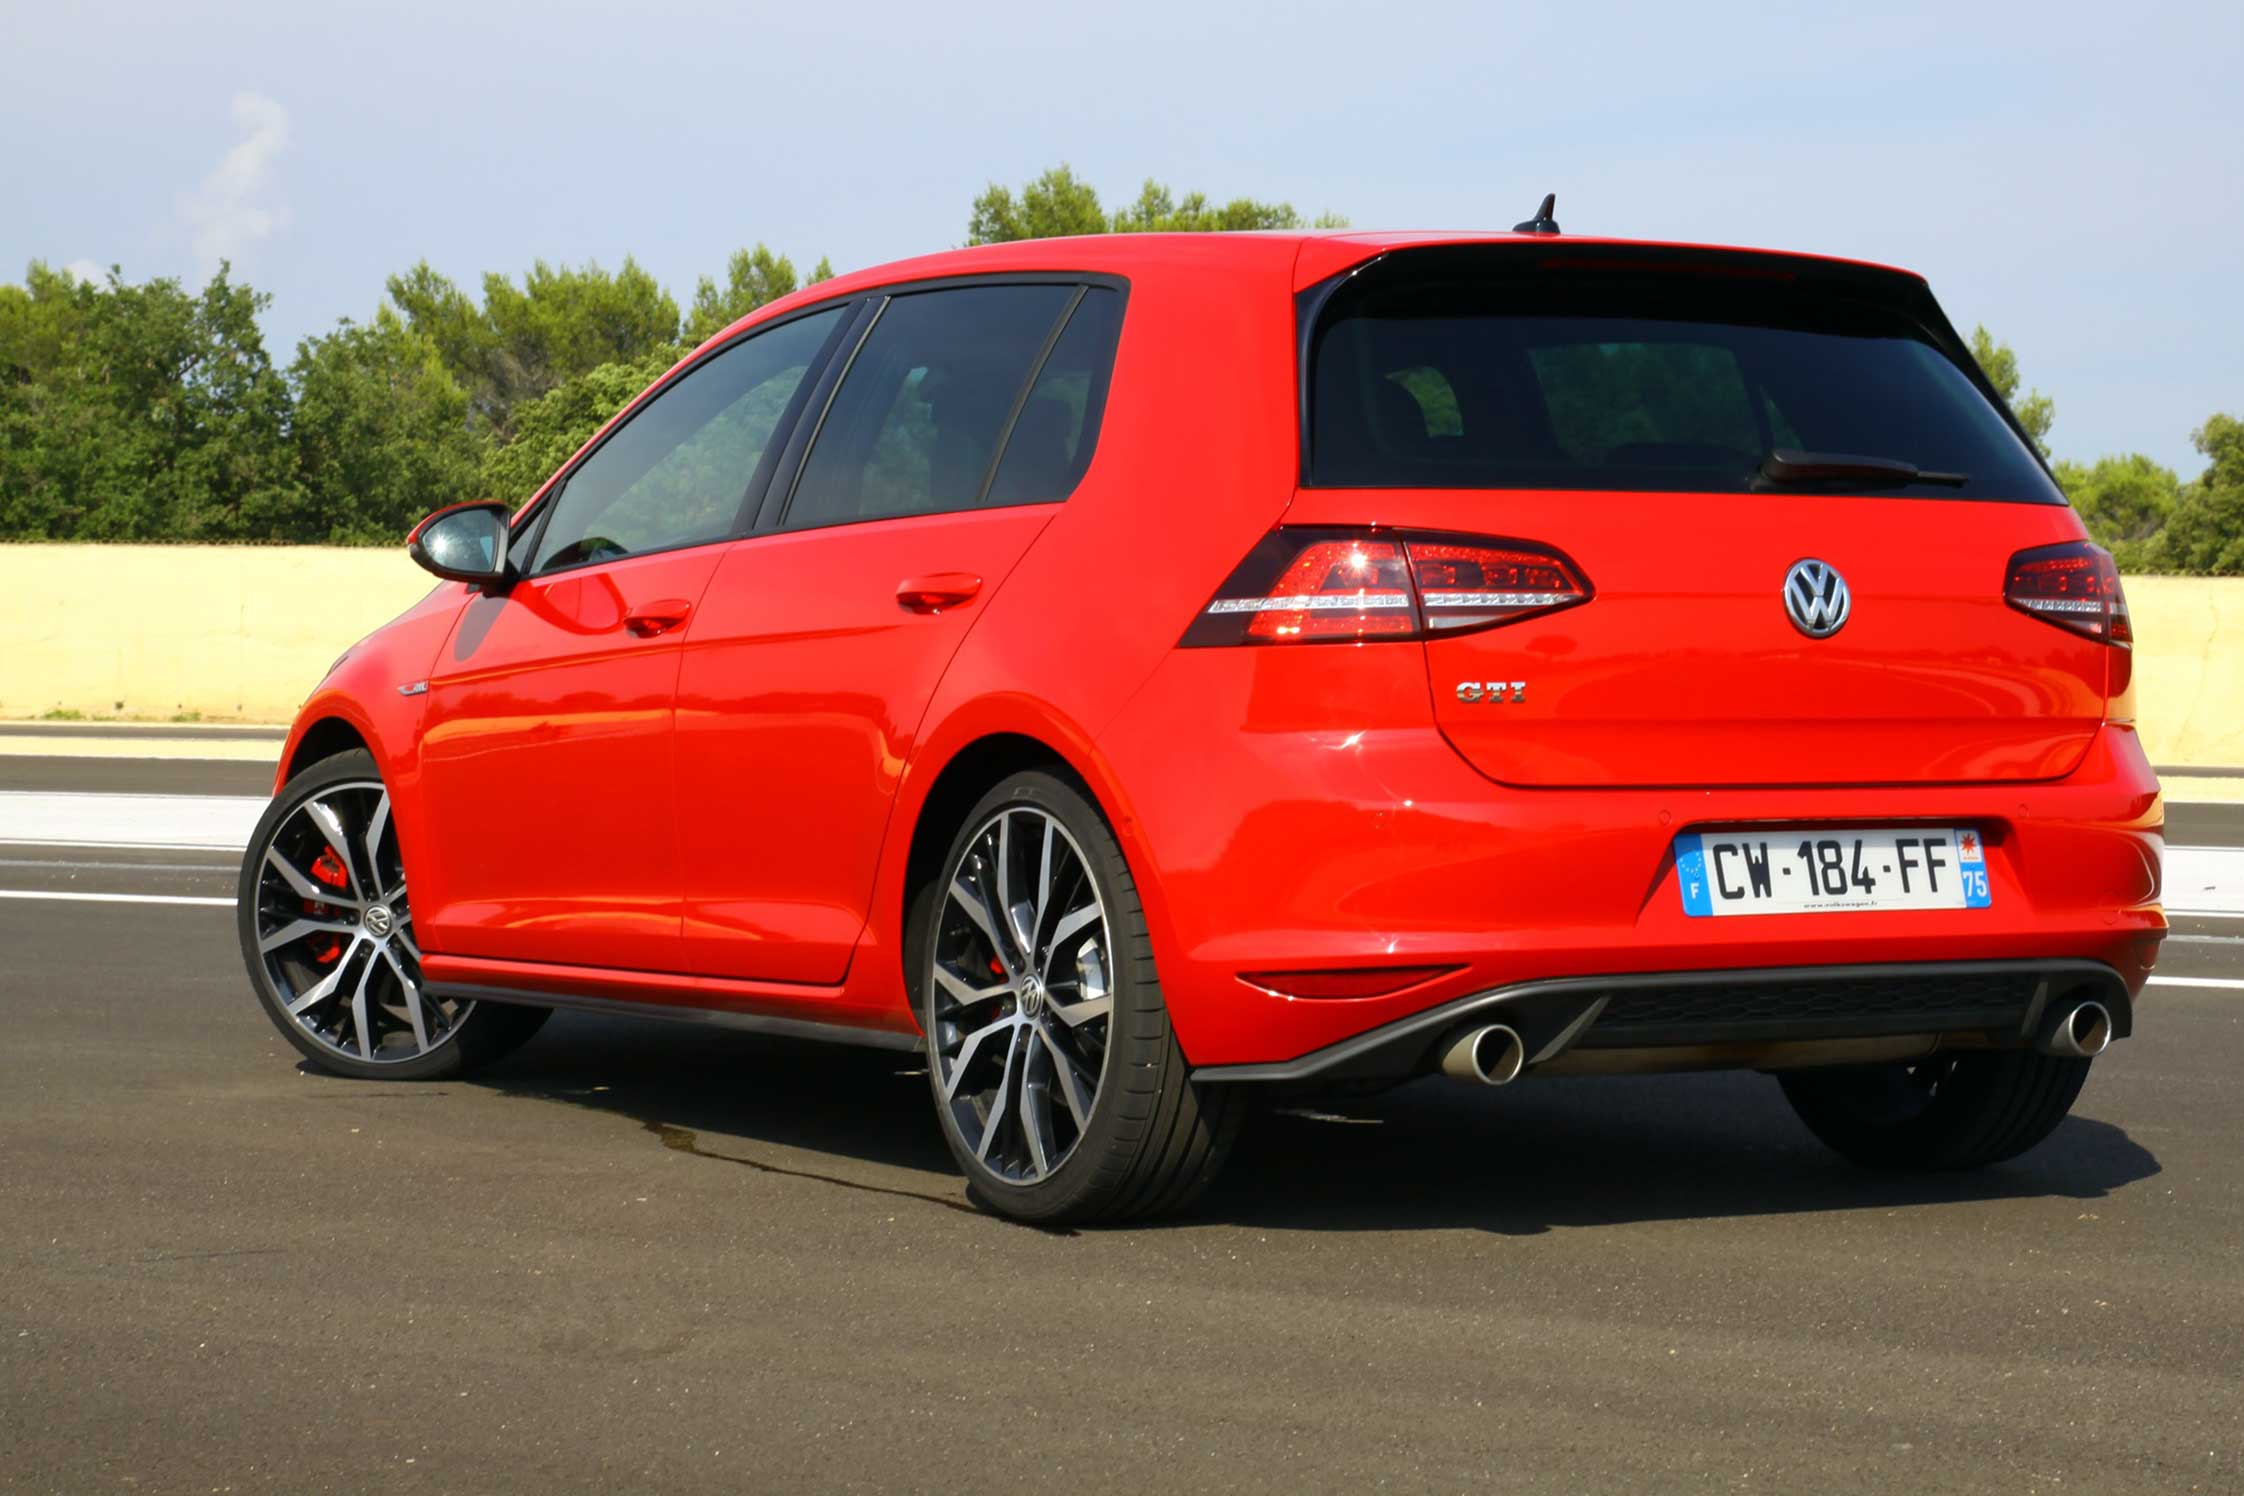 Vw Golf Gti Performance 2017 >> Essai VOLKSWAGEN Golf GTI VII Performance - Motorlegend